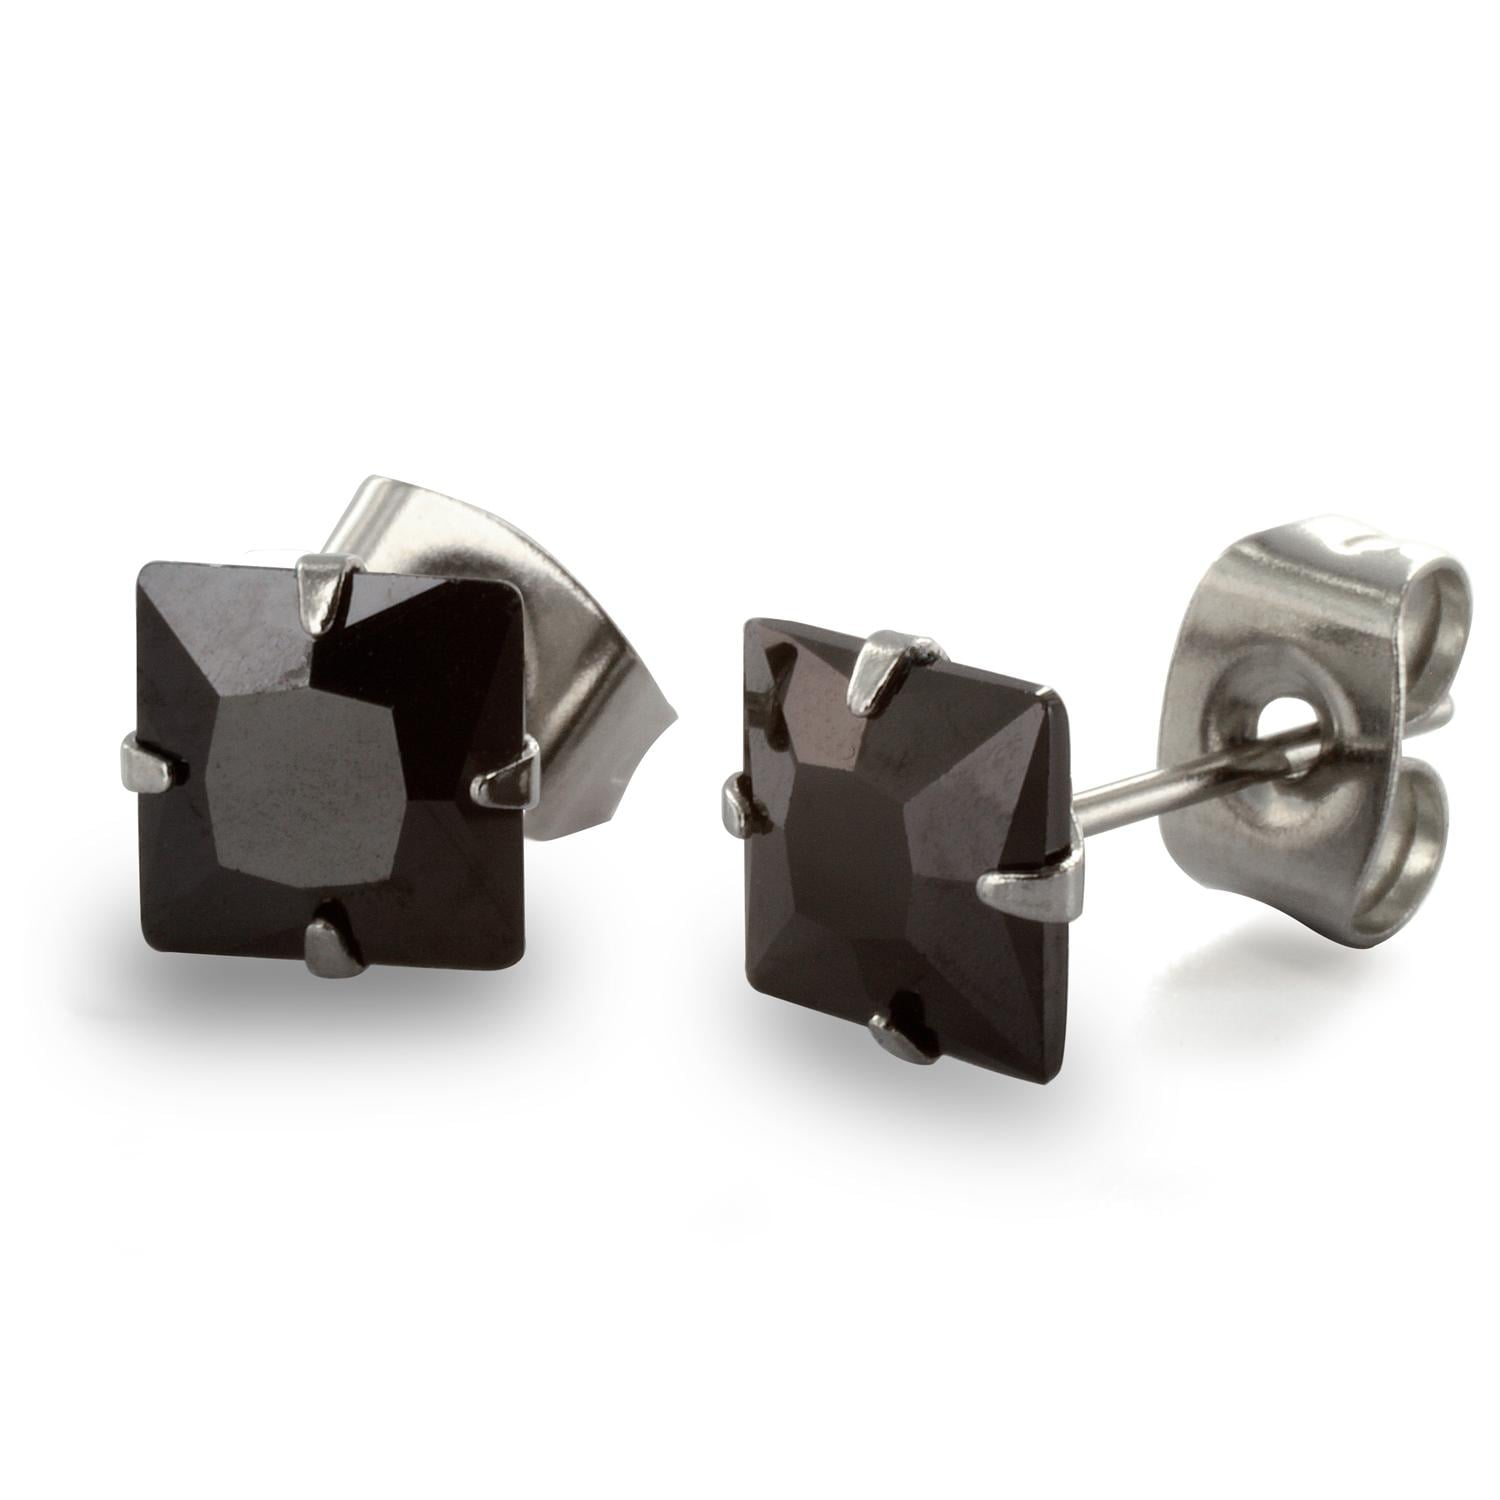 Stainless Steel Stud Earrings with Princess Cut Square Black CZ - 6 mm